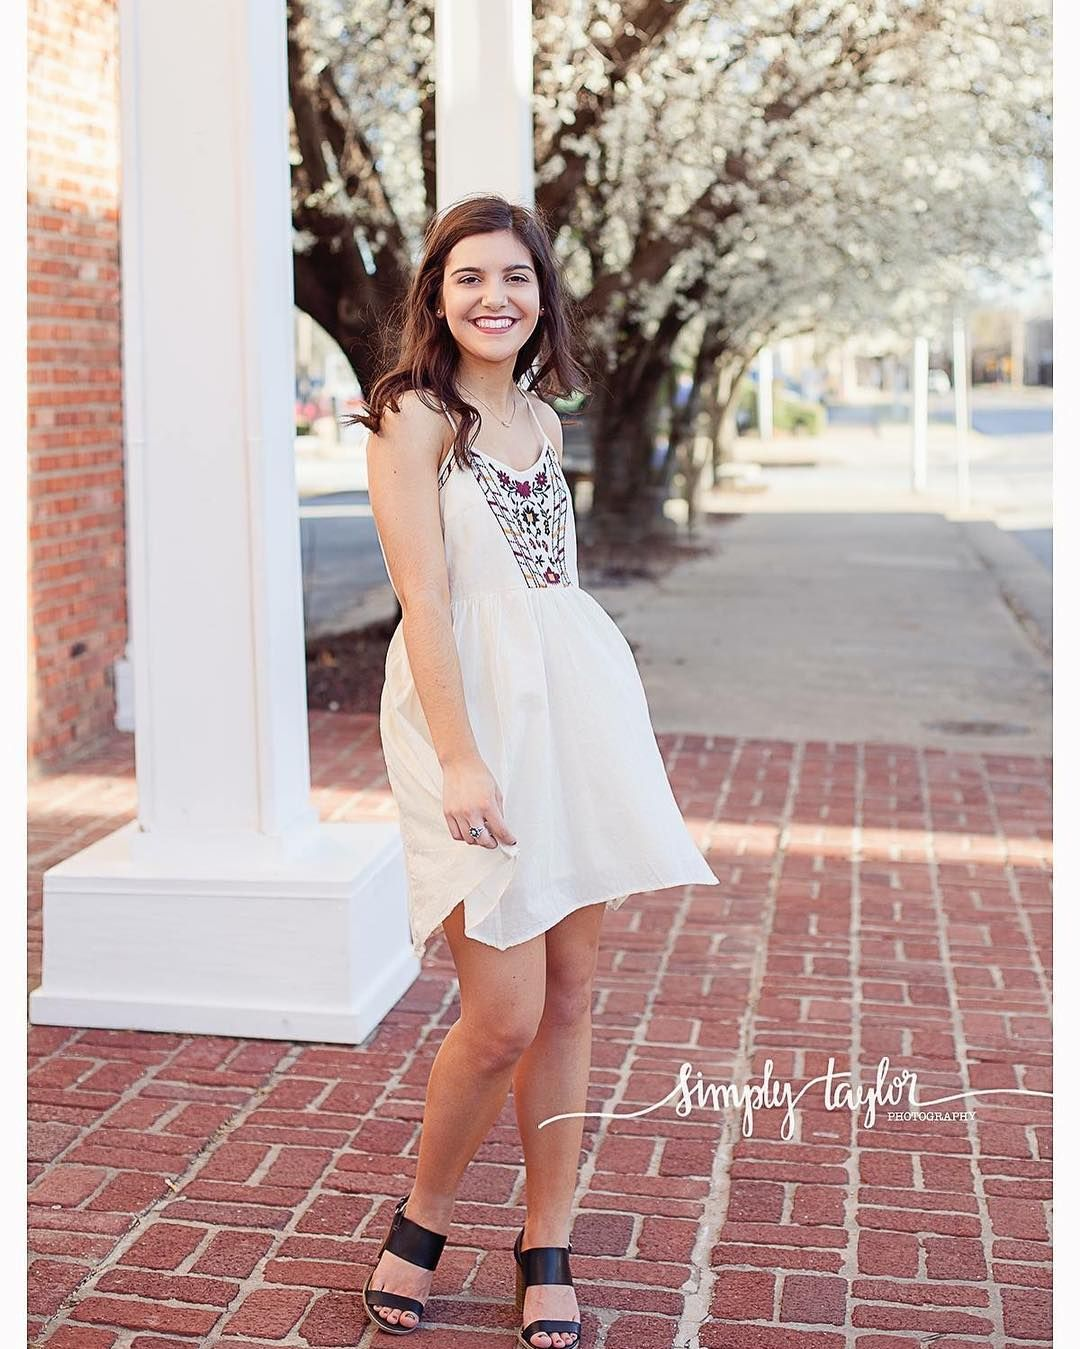 Finishing up sweet Avery's Senior Session today. She's just a doll & made my job a breeze. The beautiful spring like weather in February didn't hurt either. ... ... ... #simplytaylorphotography #simplytaylorseniors #oklahomaseniorphotographer #oklahomaseniors #normannorth #normanseniorphotographer #tulsaseniorphotographer #classof2017